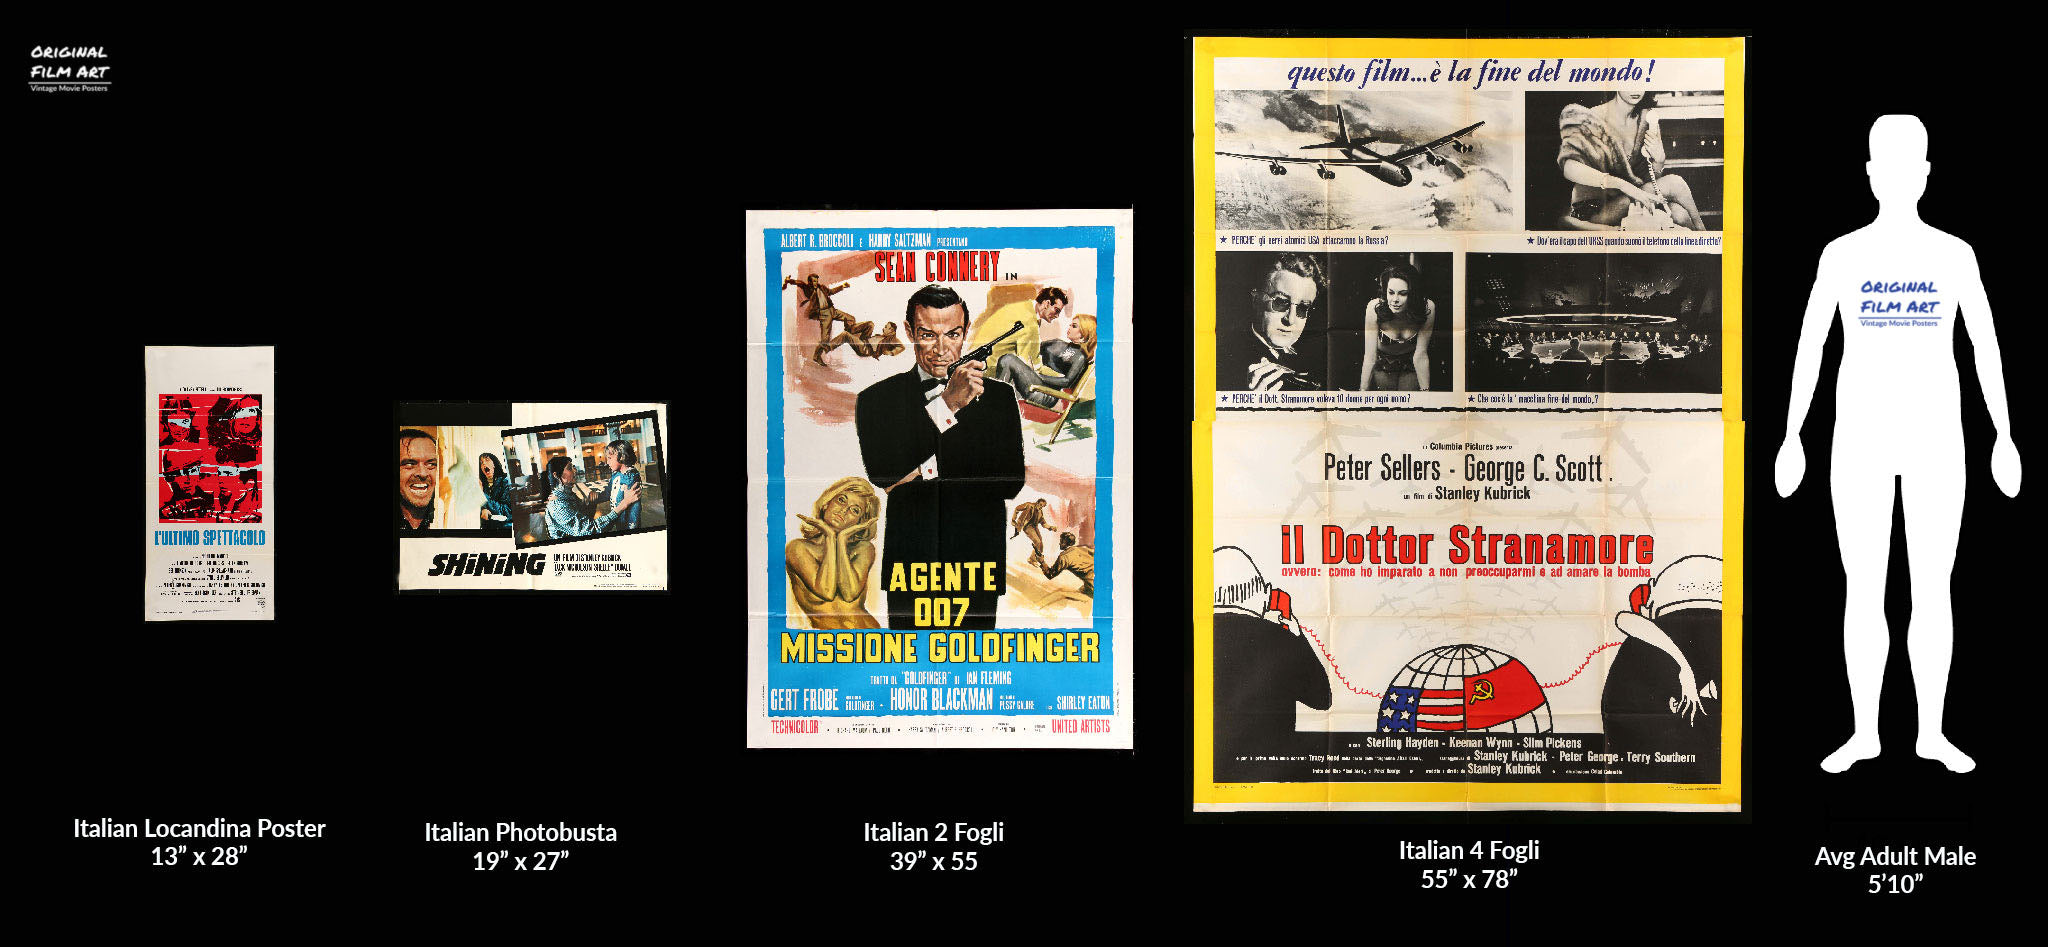 Italian Movie Poster Sizes at Original Film Art - Italy